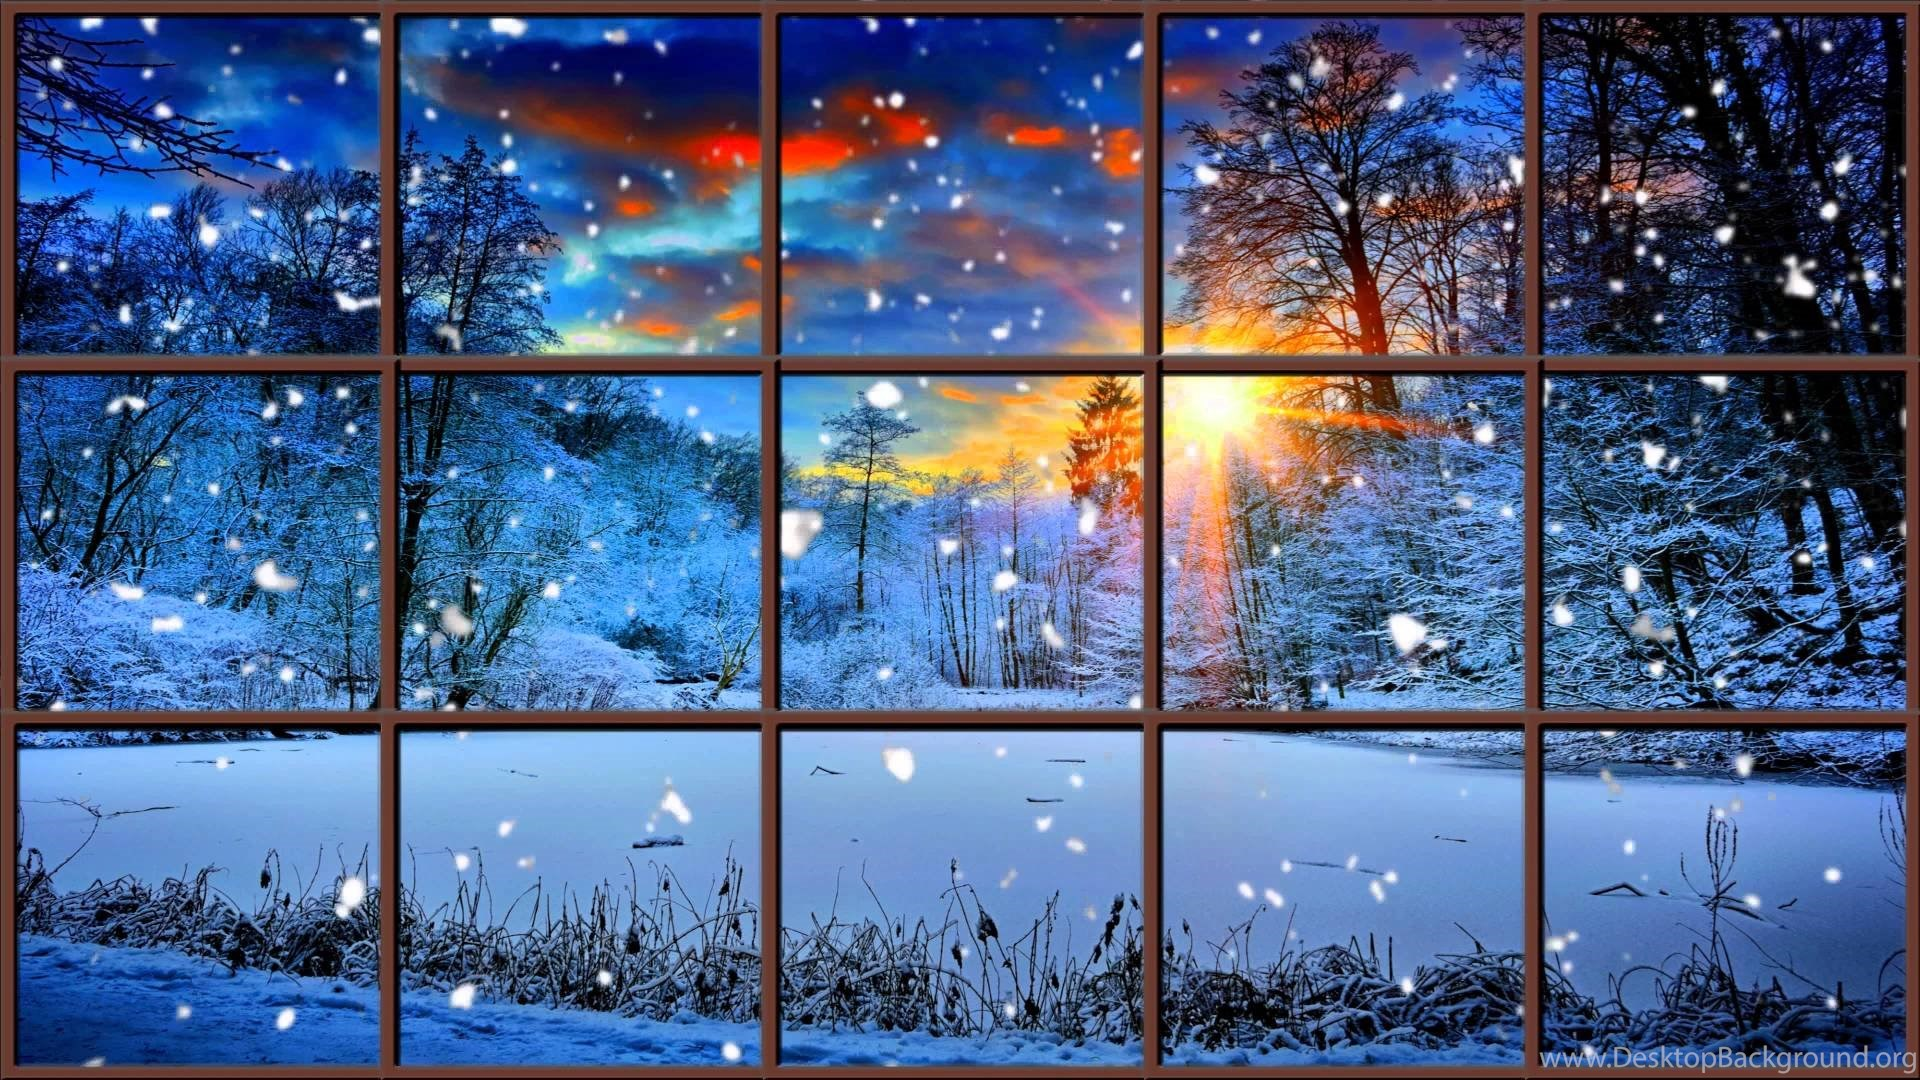 Iphone 5 Falling Snow Wallpaper Winter Window Snow Scene In 4k Living Wallpapers With